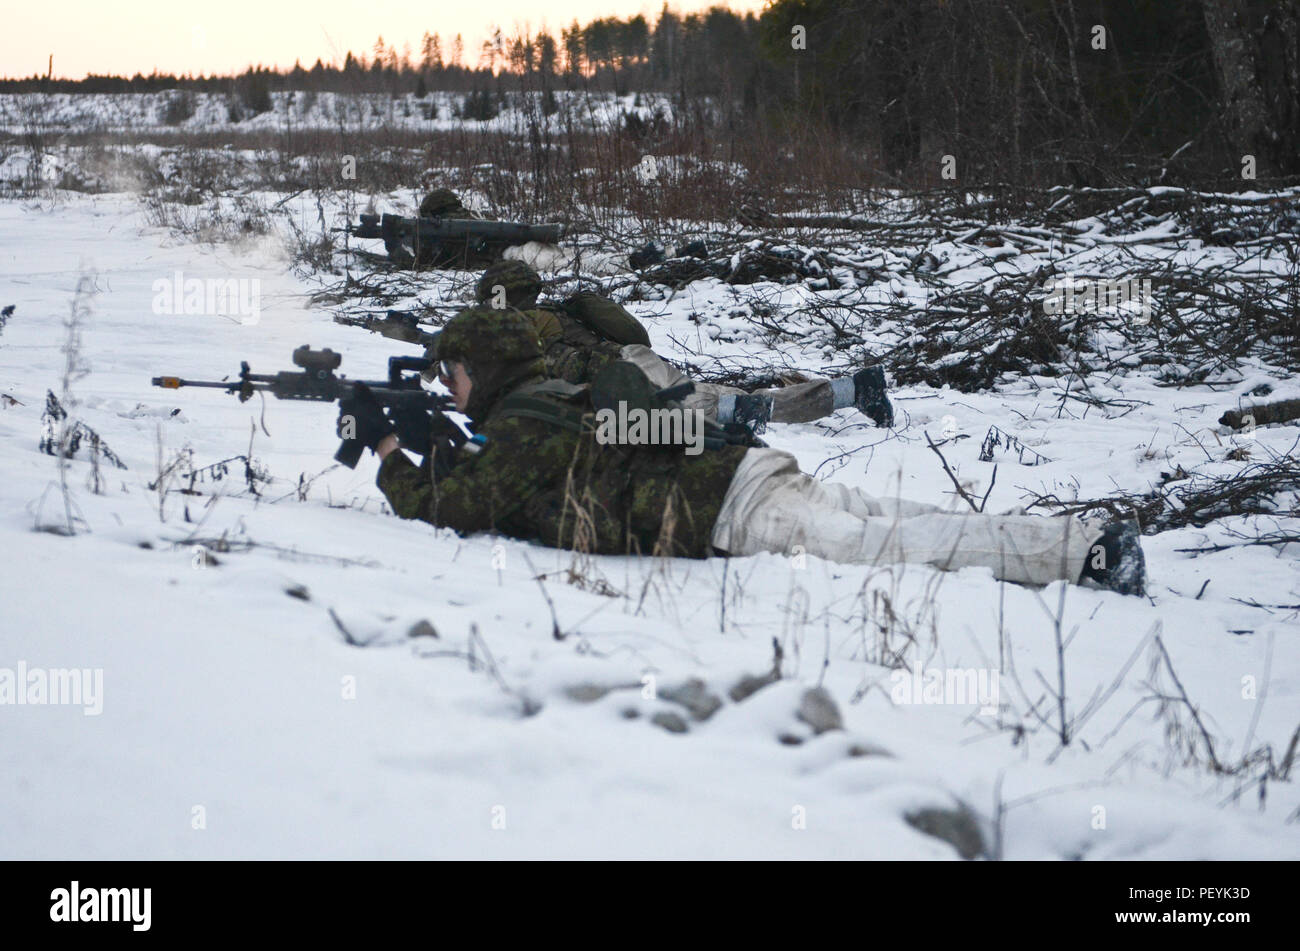 Estonian army defensive forces return fire on the U.S. Army opposing forces during Exercise Force on Force at Tapa Training Area in Estonia, Feb. 16, 2016. (U.S. Army photo by Staff Sgt. Steven M. Colvin/Released) - Stock Image